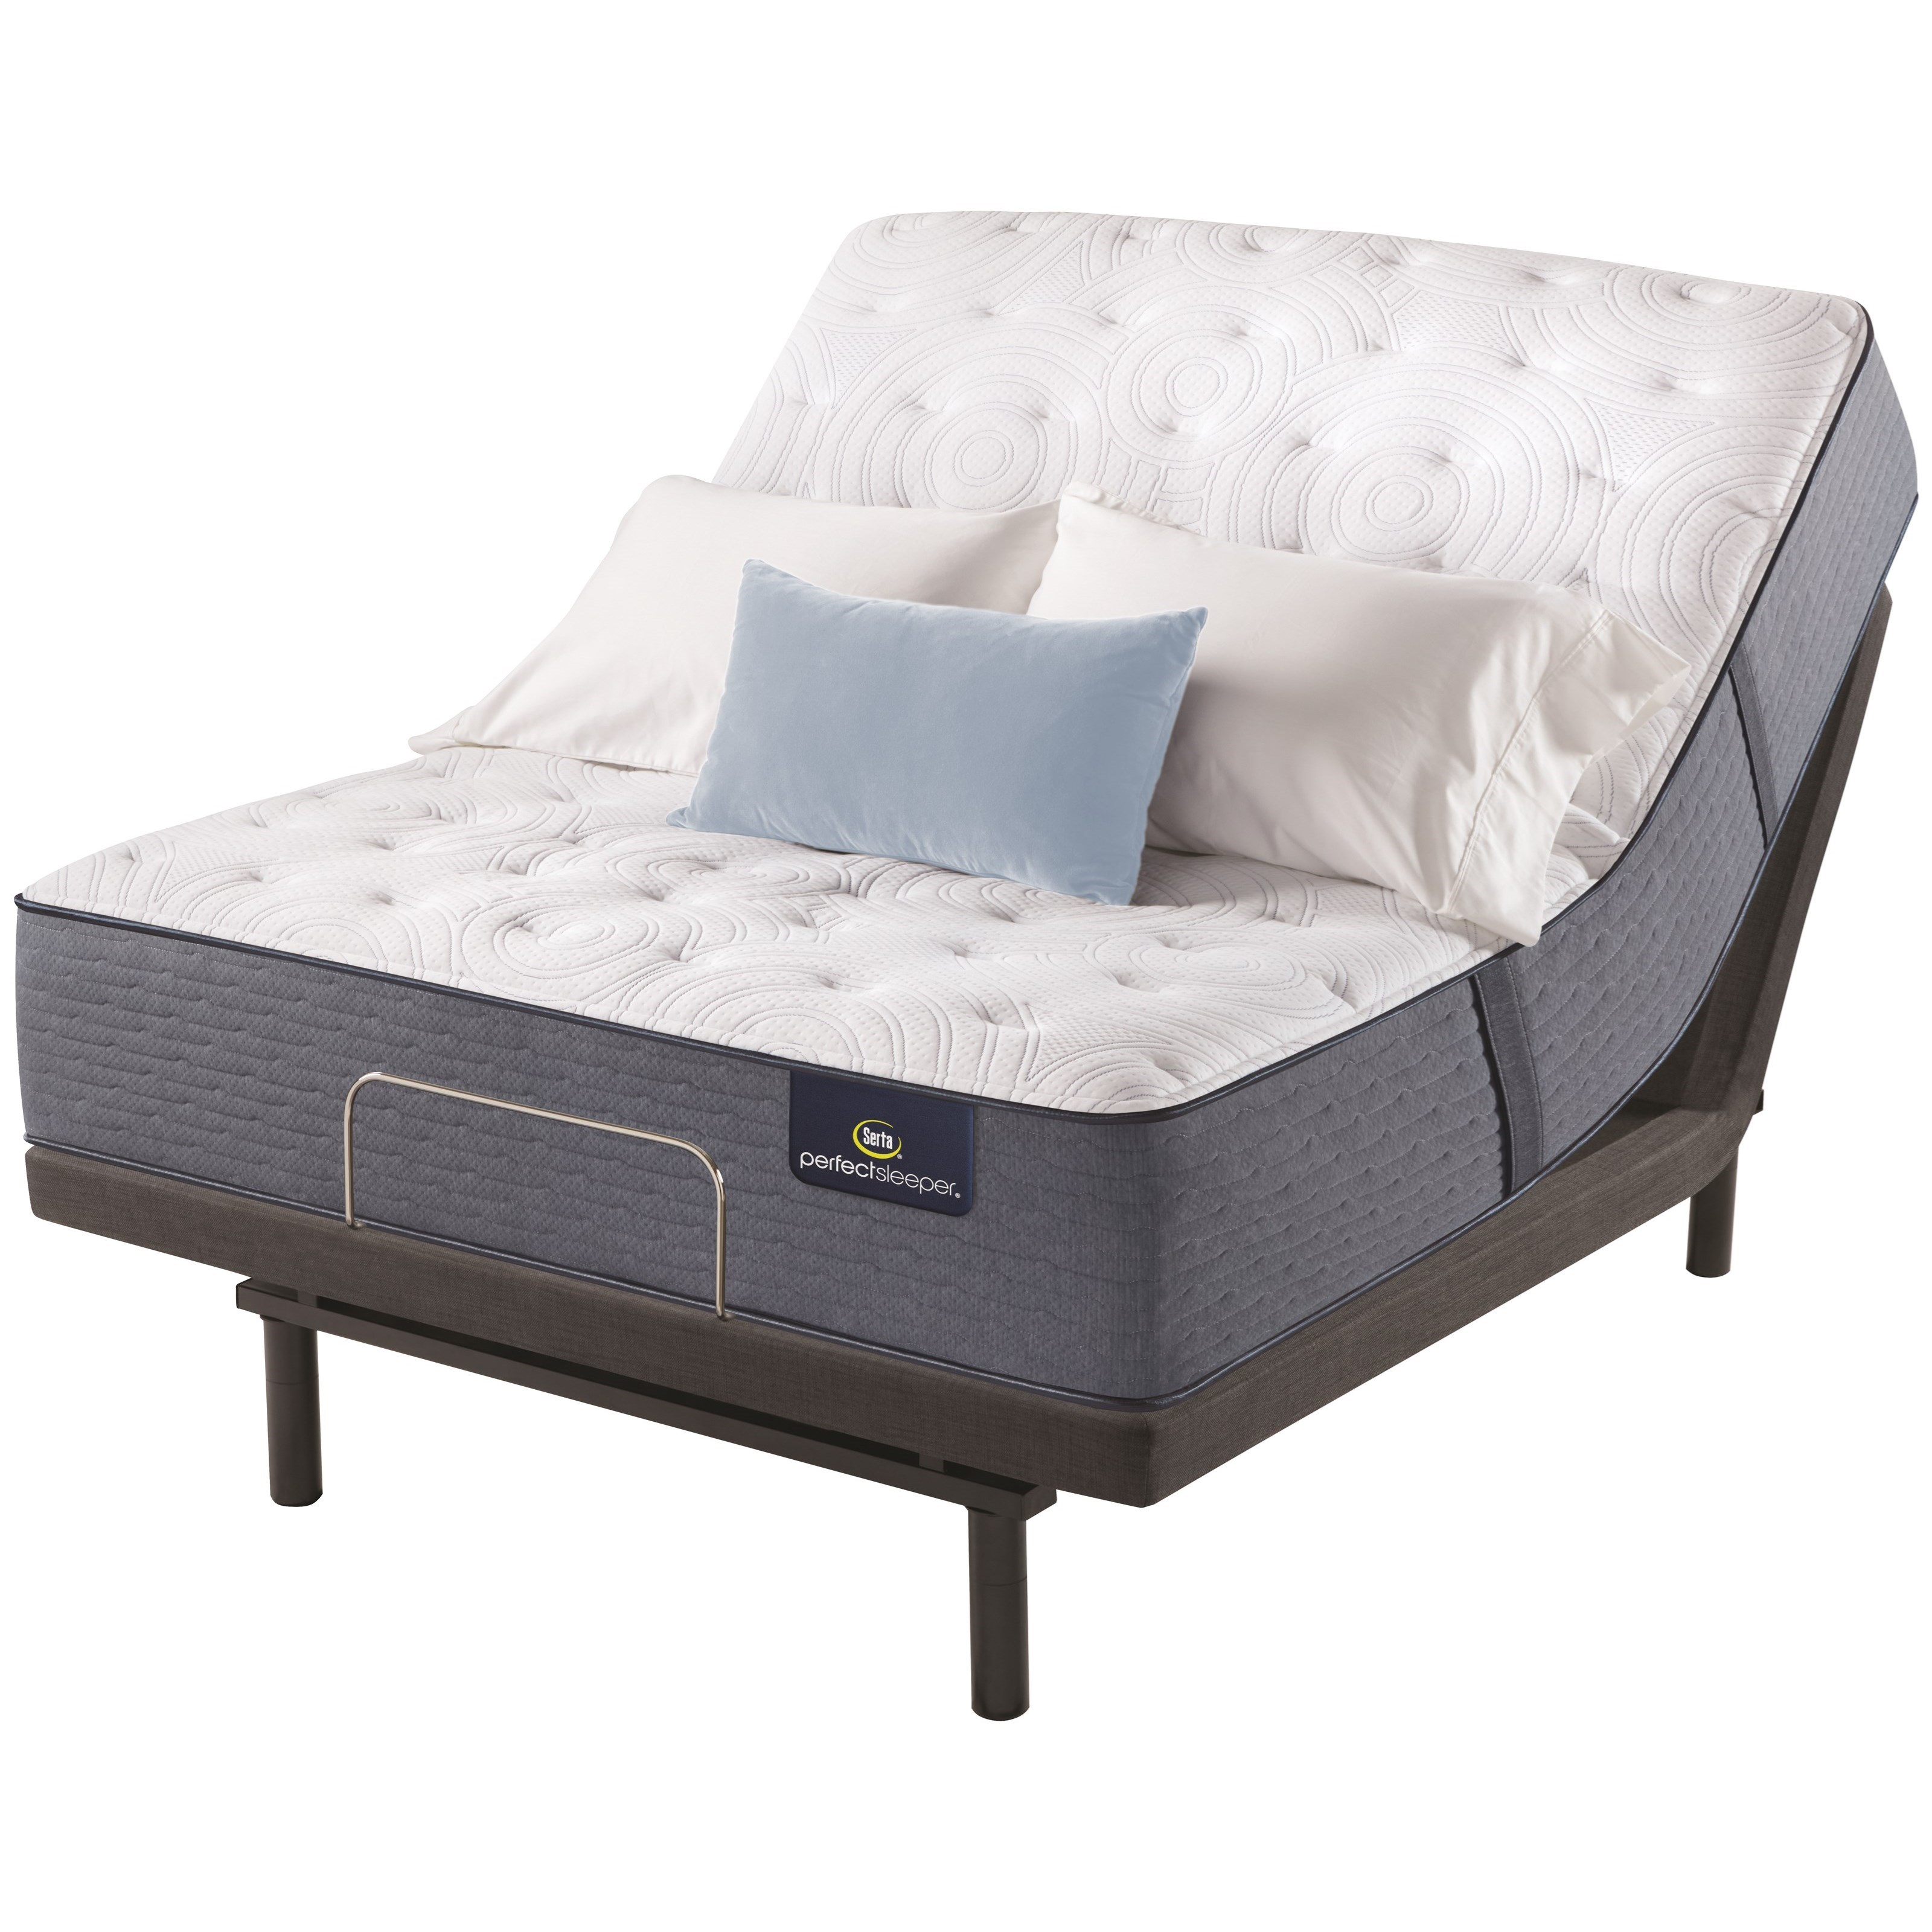 """Chastain Twin XL 13"""" Extra Firm Adjustable Set by Serta at Morris Home"""